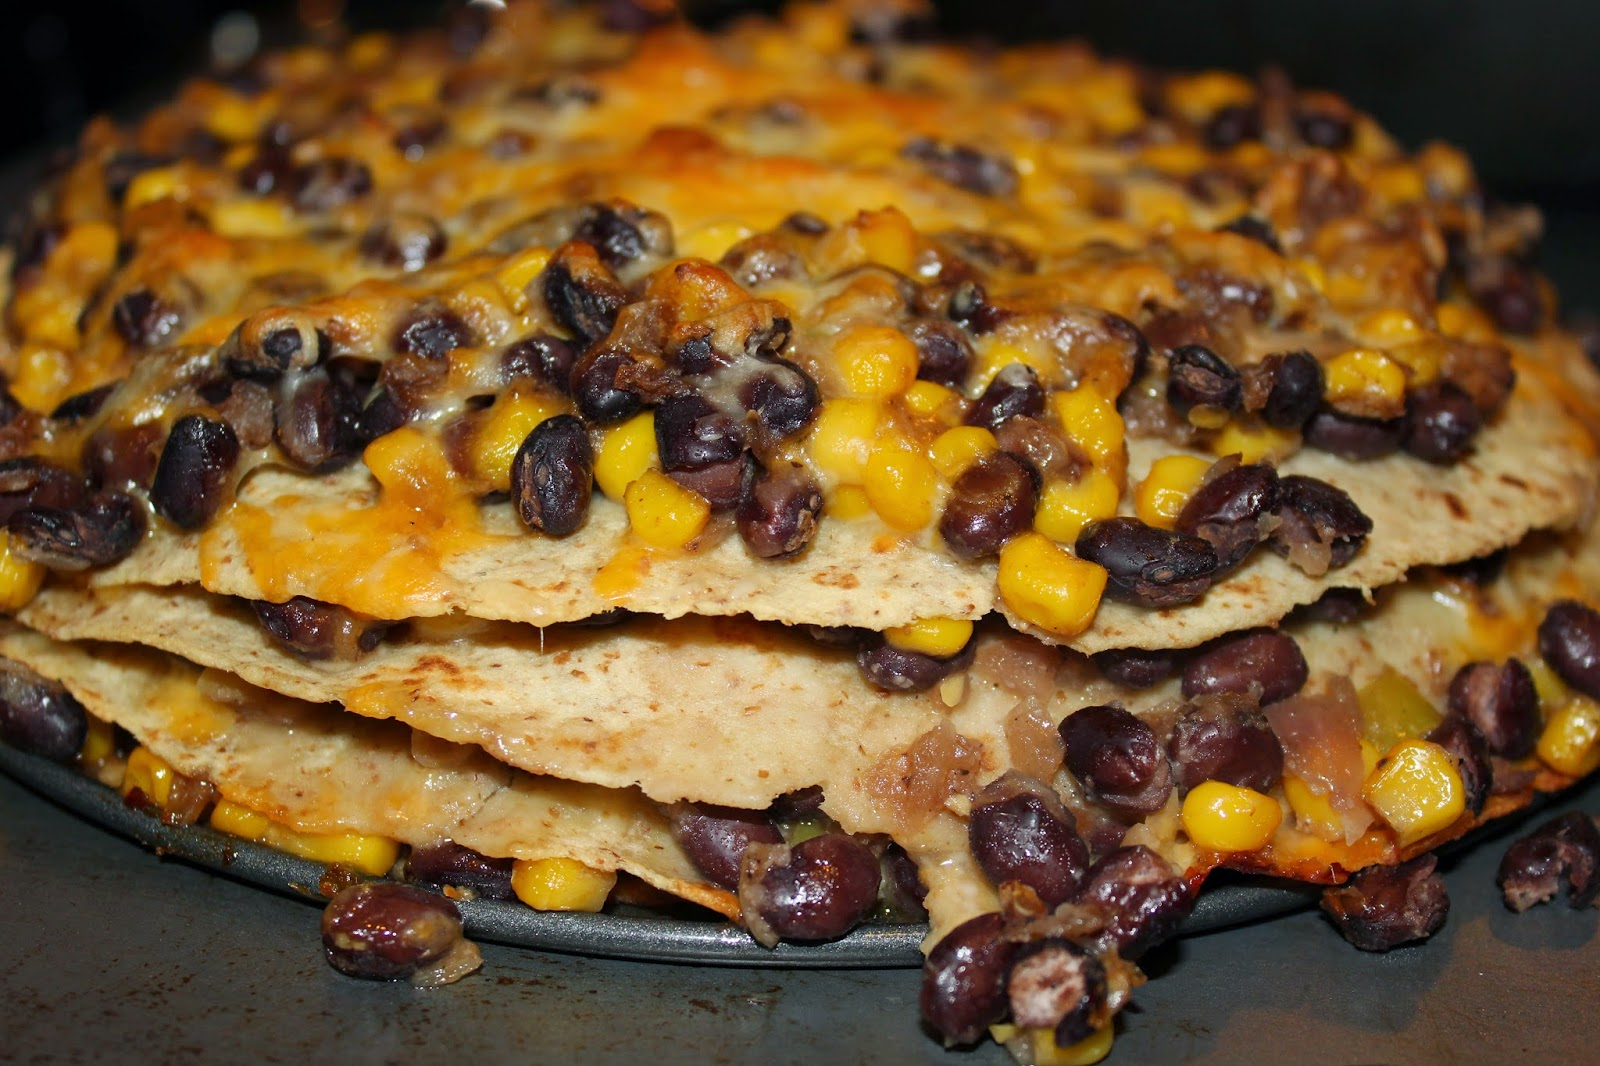 Jessica's Cookery: Tortilla and Black Bean Pie